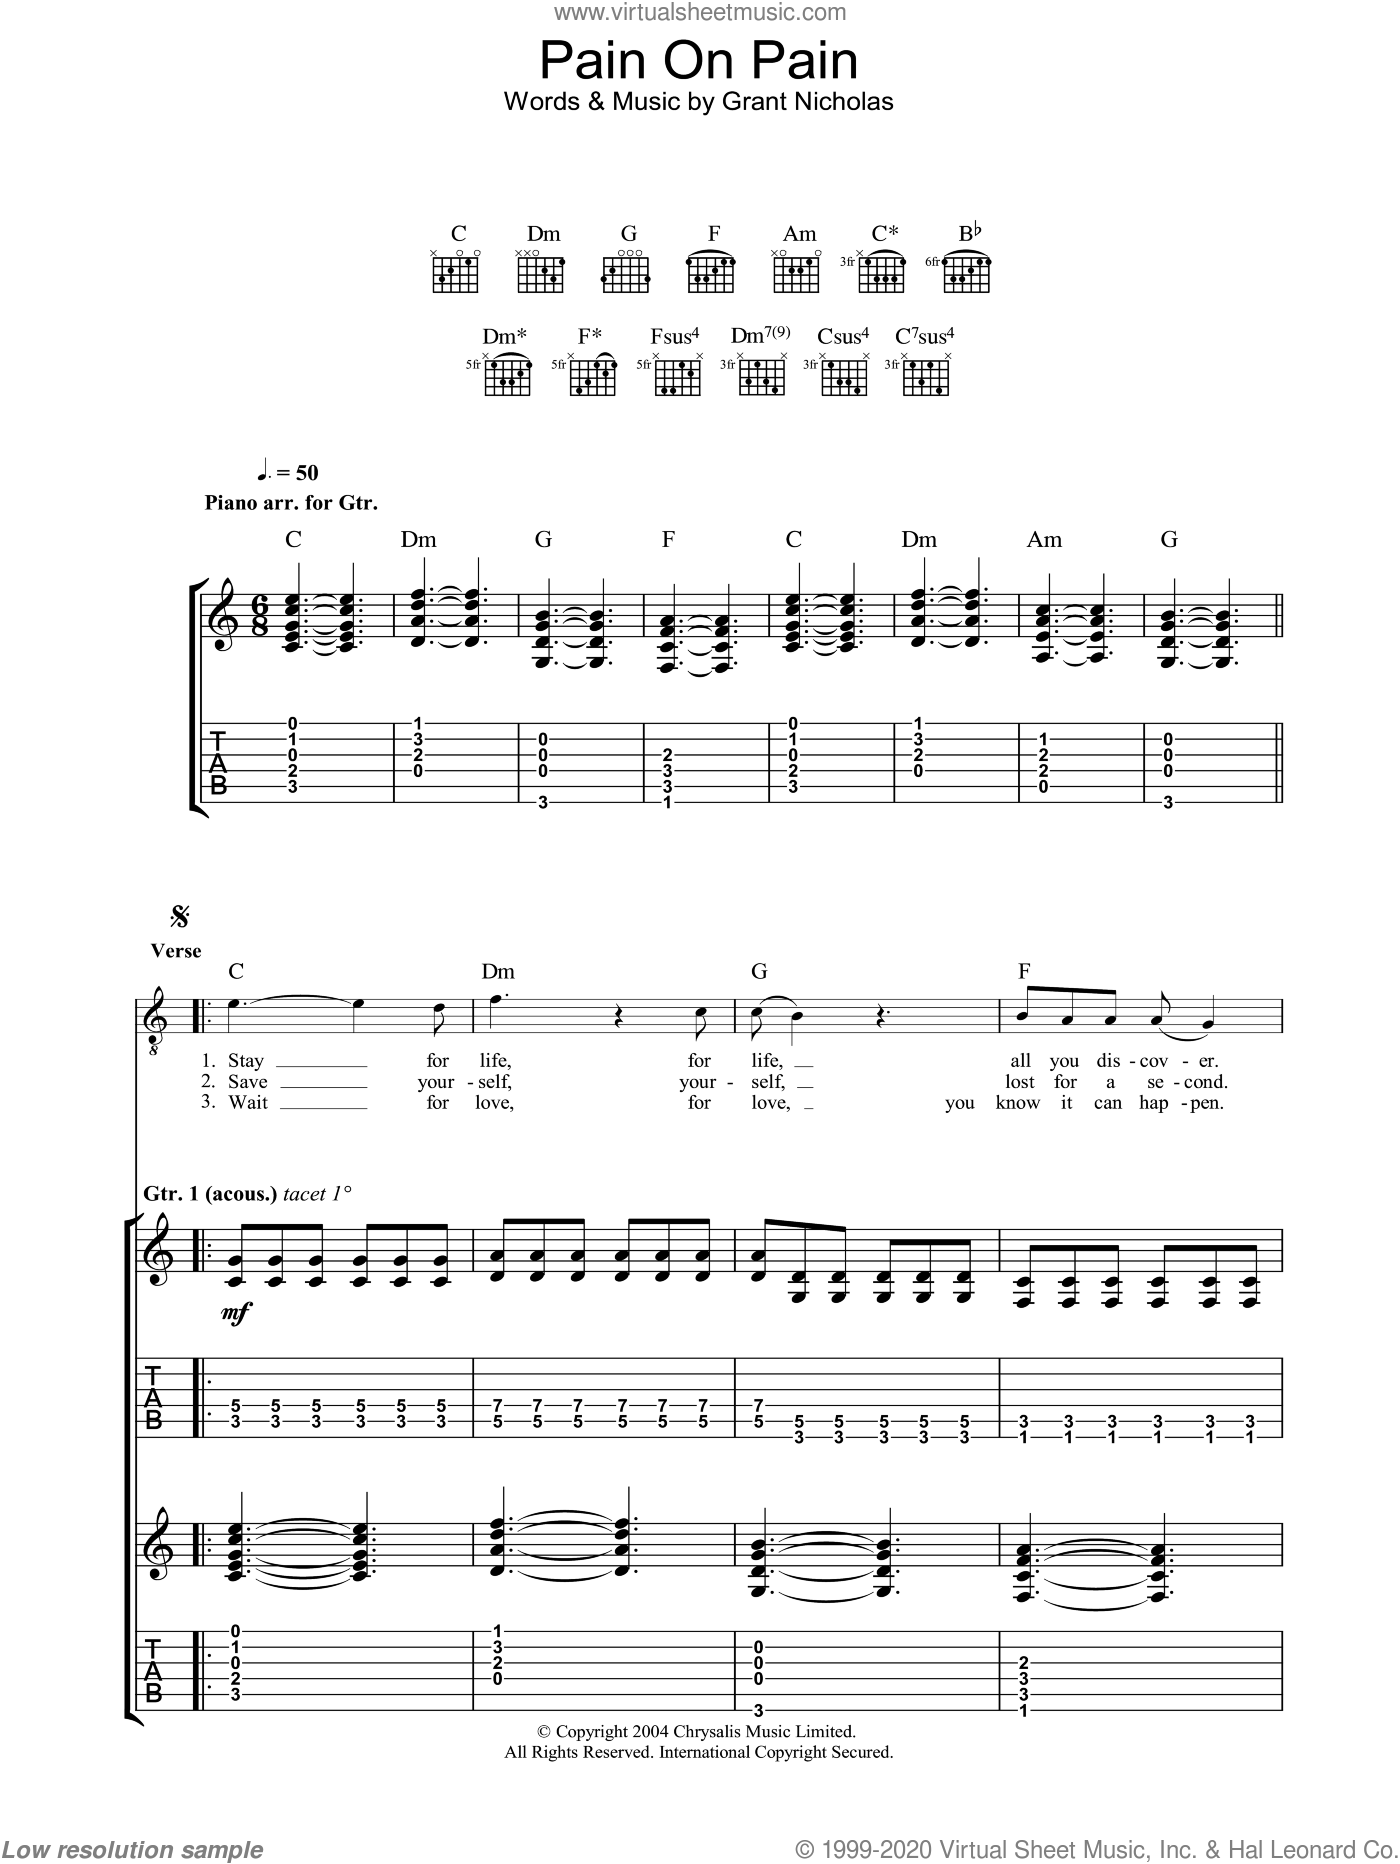 Pain On Pain sheet music for guitar (tablature) by Grant Nicholas